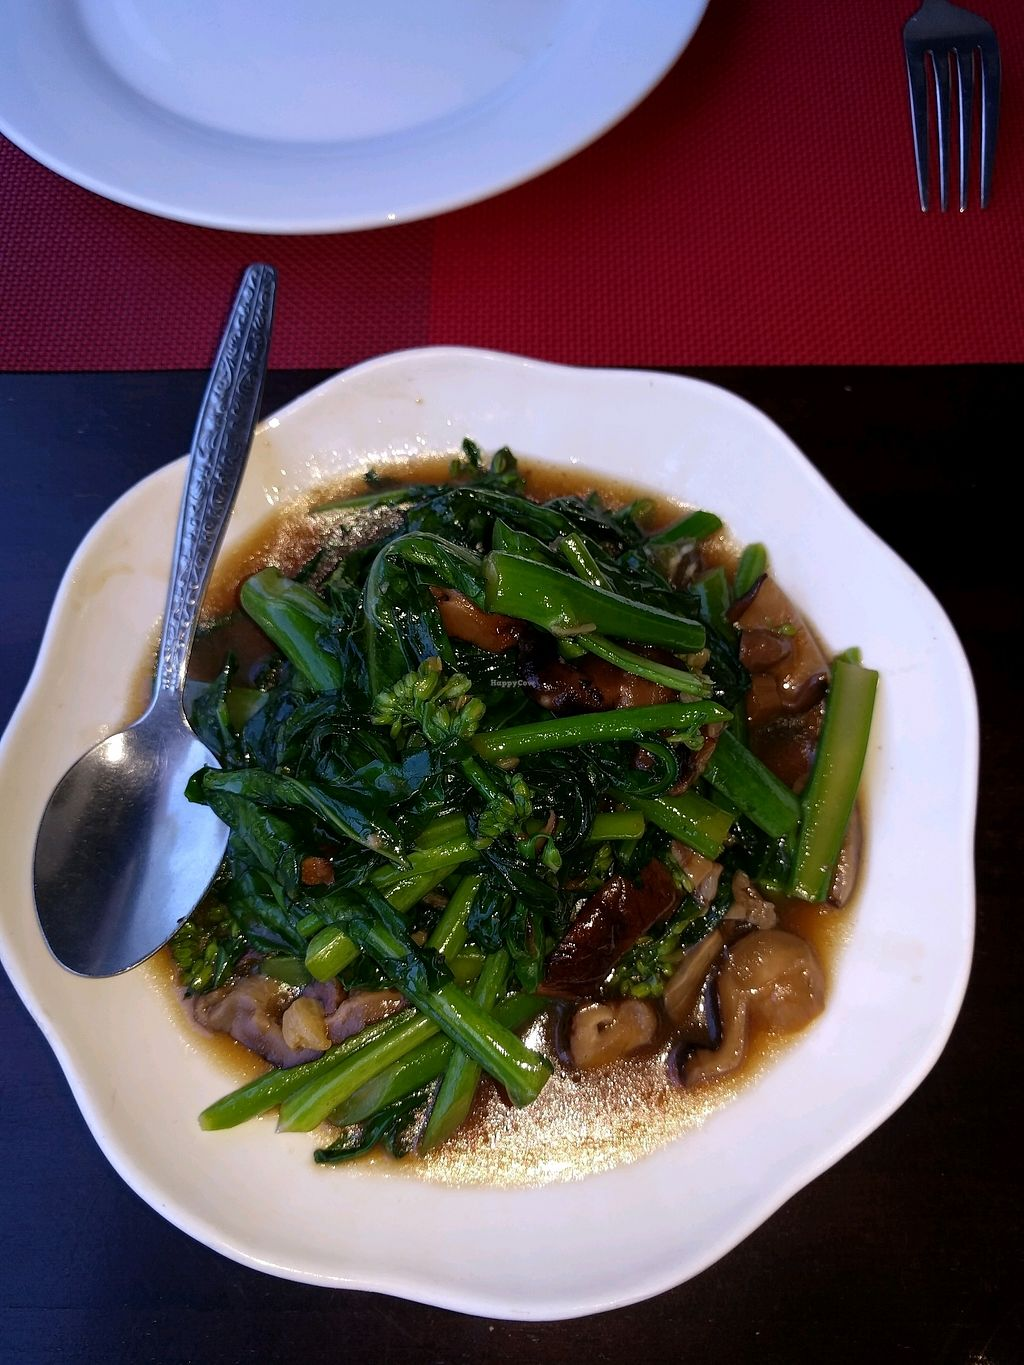 """Photo of Tamarind - A Taste of Laos  by <a href=""""/members/profile/mikeandsunny"""">mikeandsunny</a> <br/>greens and mushrooms <br/> January 24, 2018  - <a href='/contact/abuse/image/35117/350423'>Report</a>"""